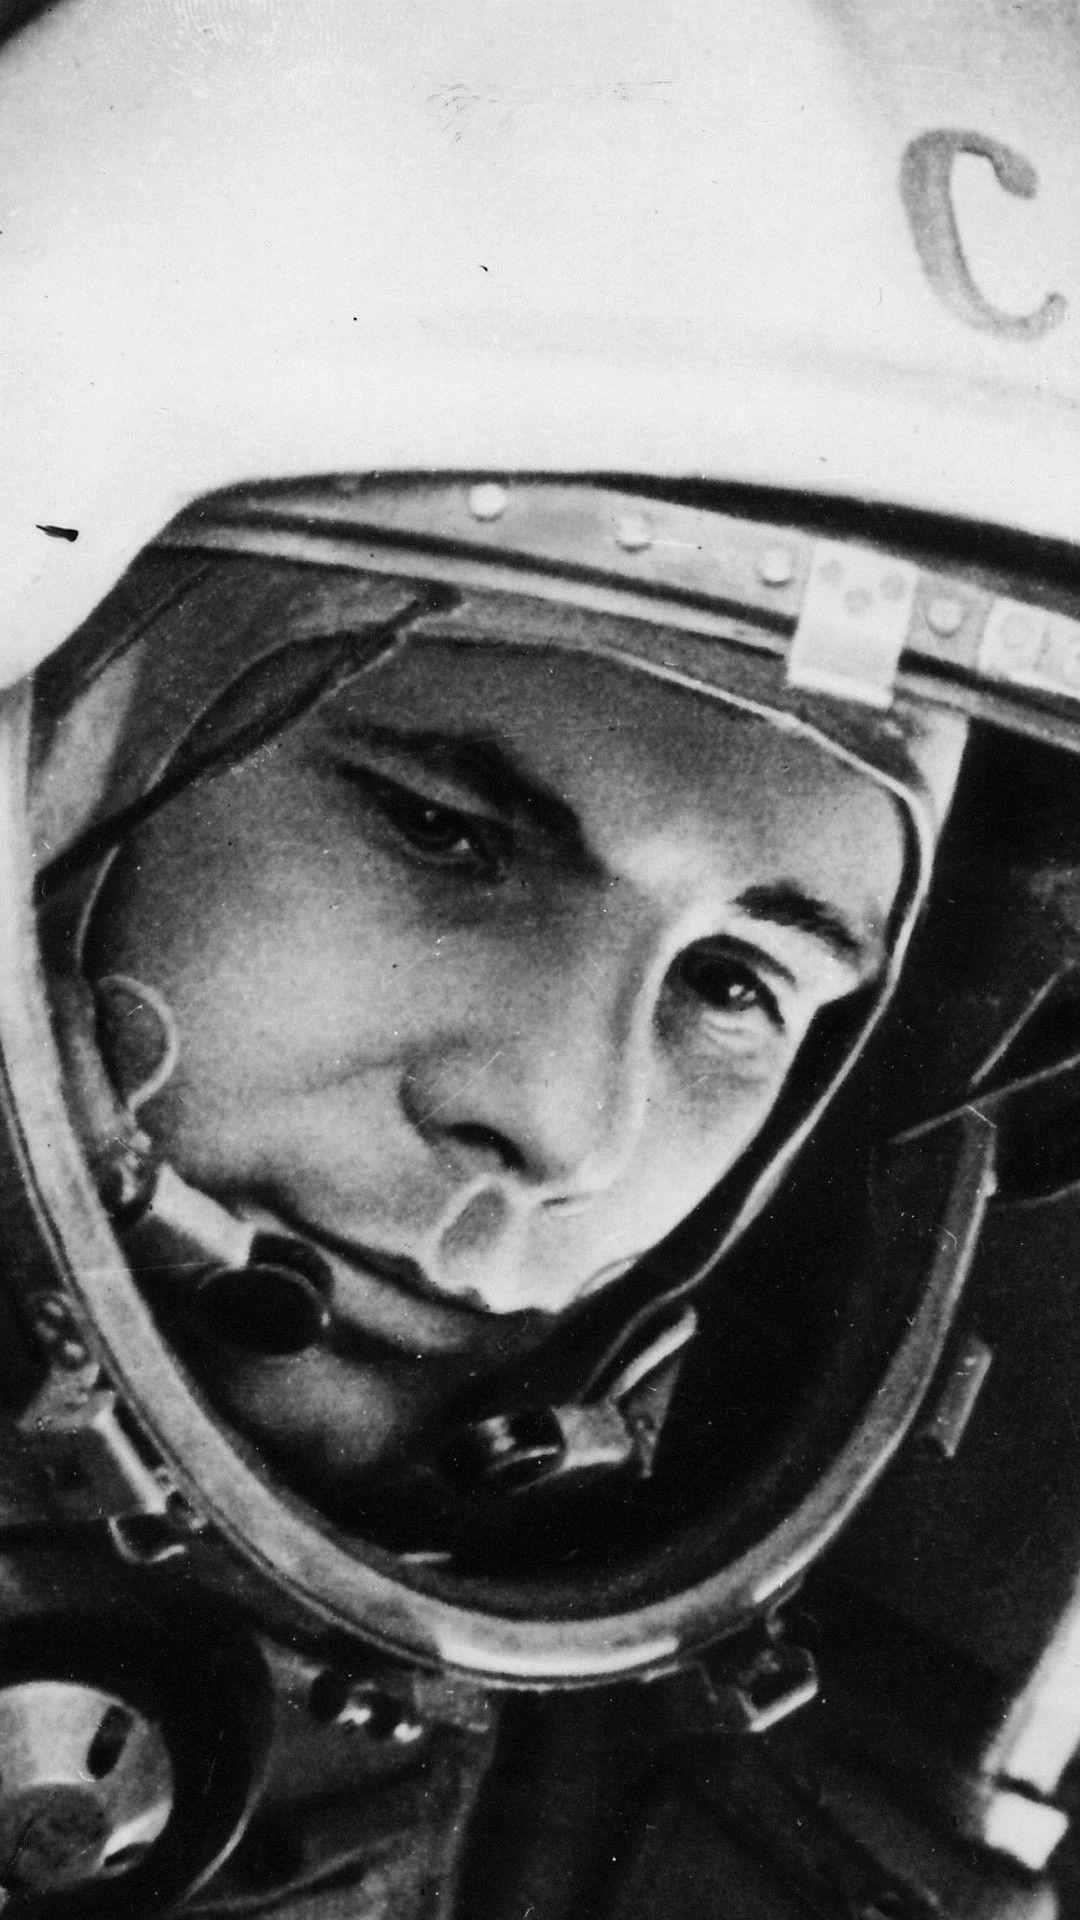 gagarin wallpaper - photo #2